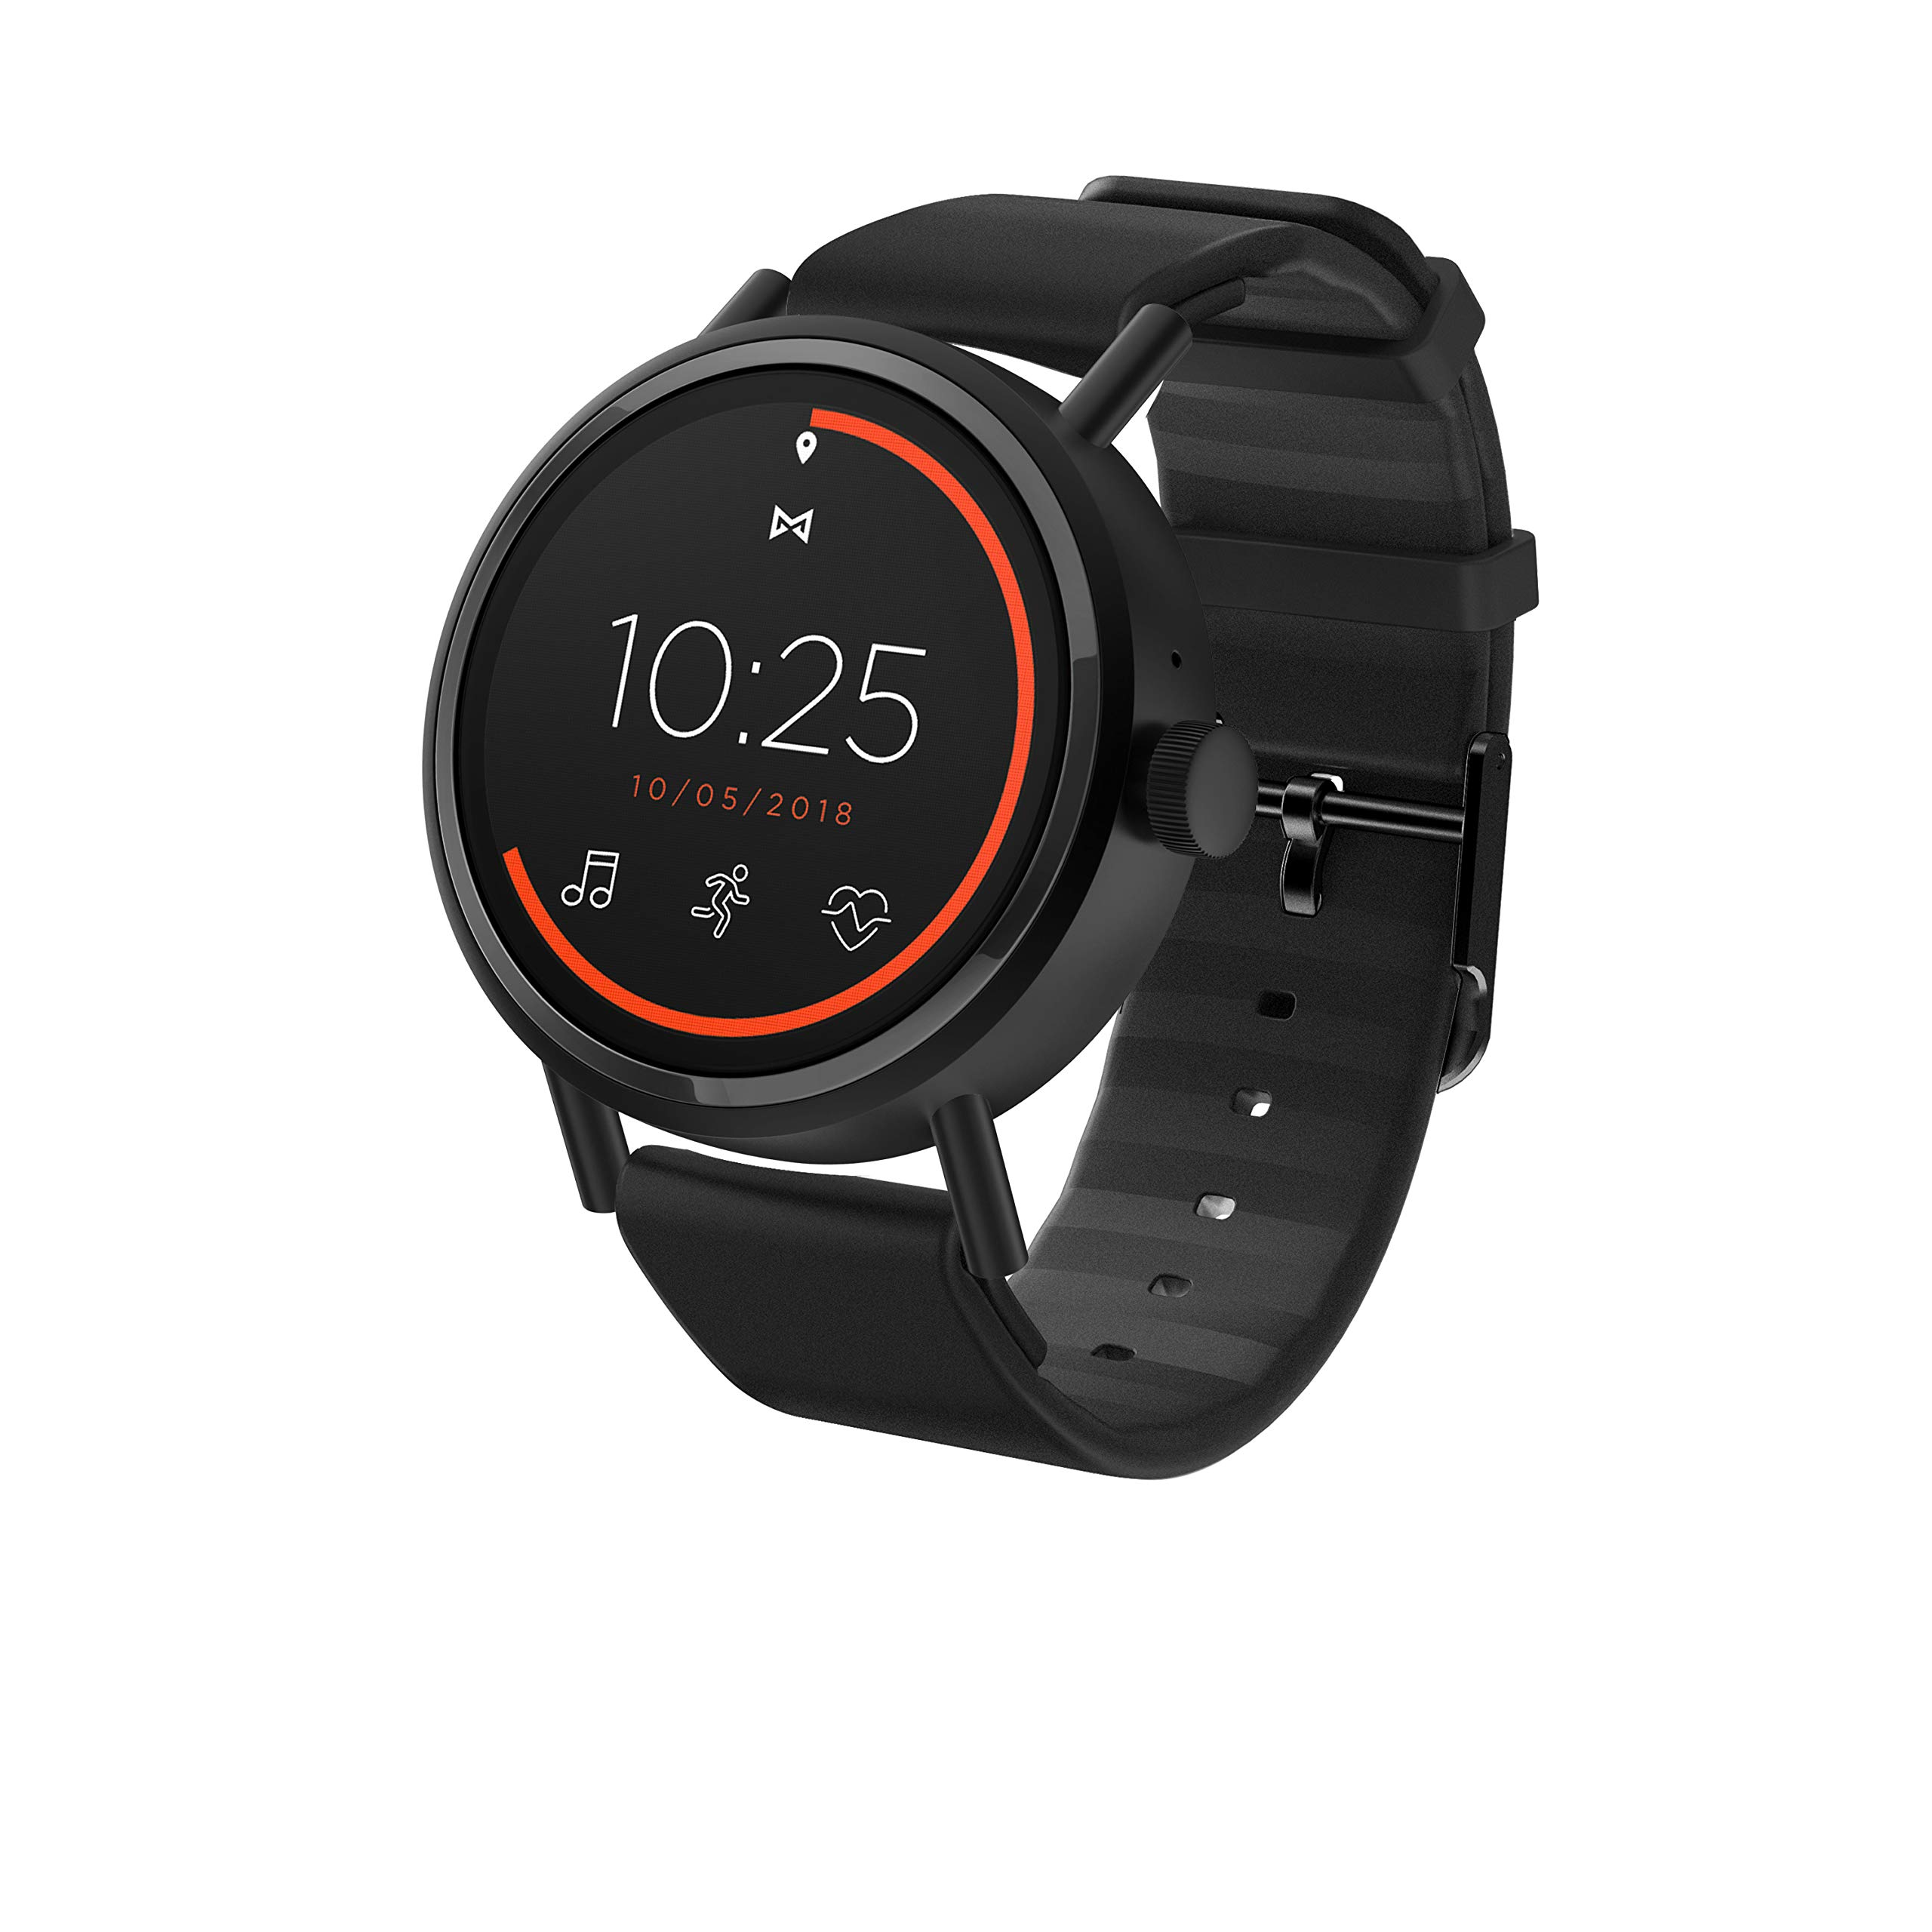 Misfit Stainless Silicone Touchscreen Smartwatch